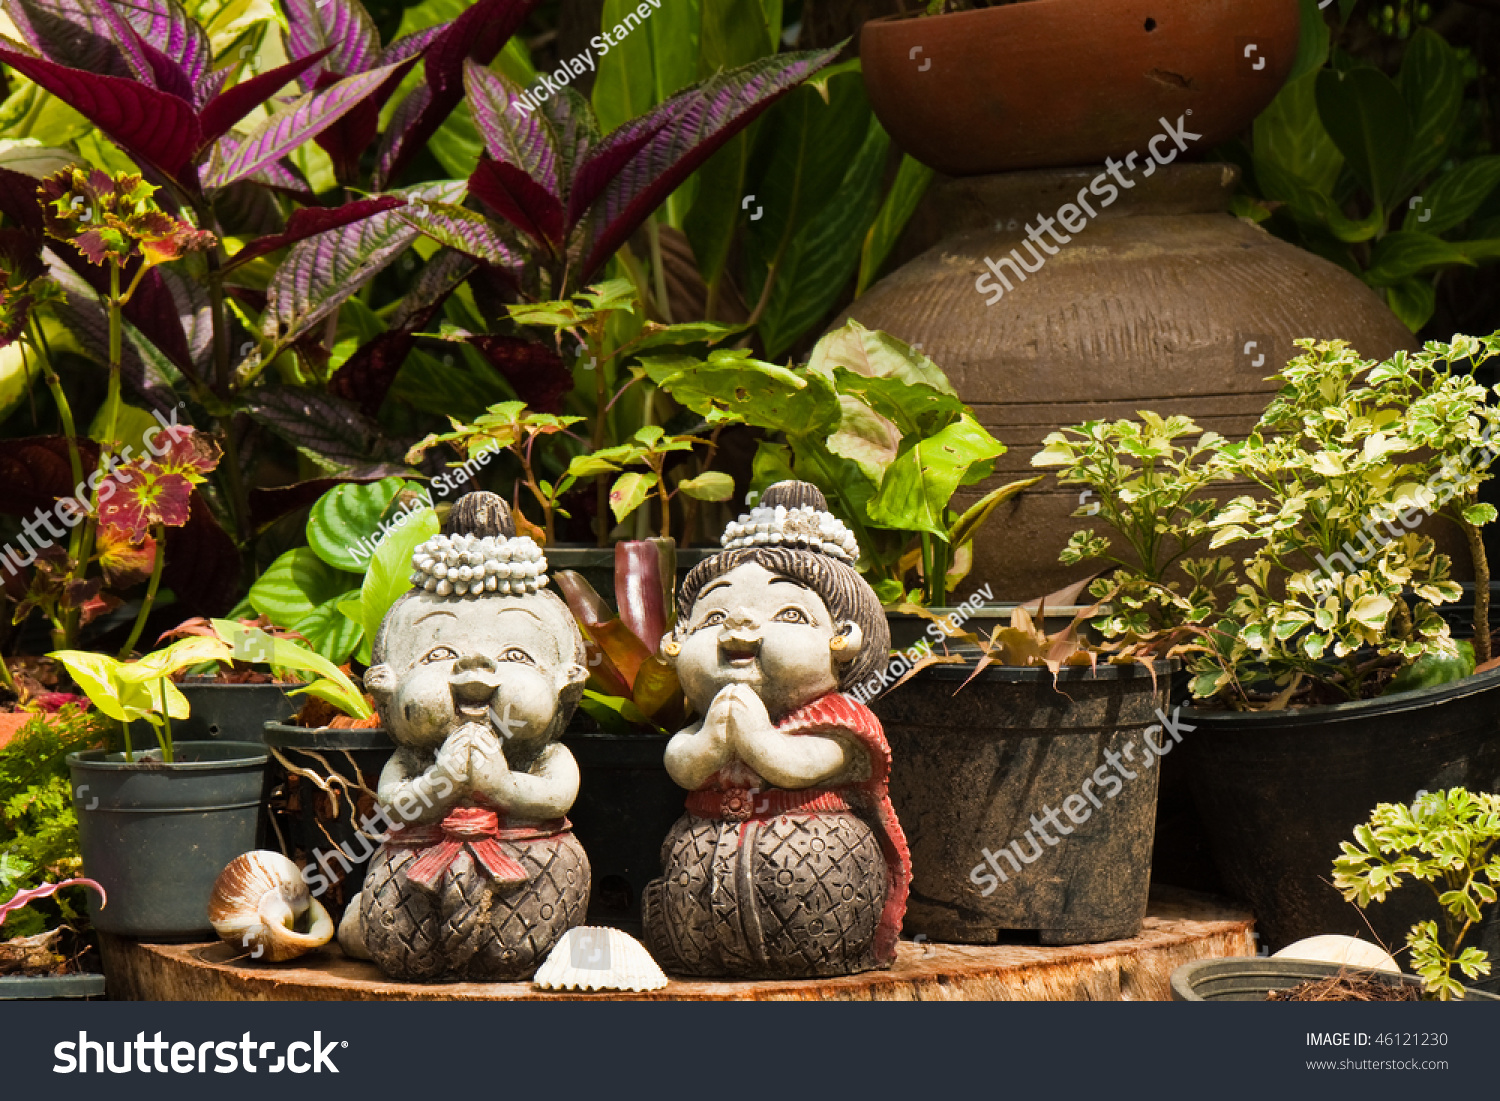 Gnome Statuettes Thailand Garden Stock Photo (Edit Now) 46121230 ...